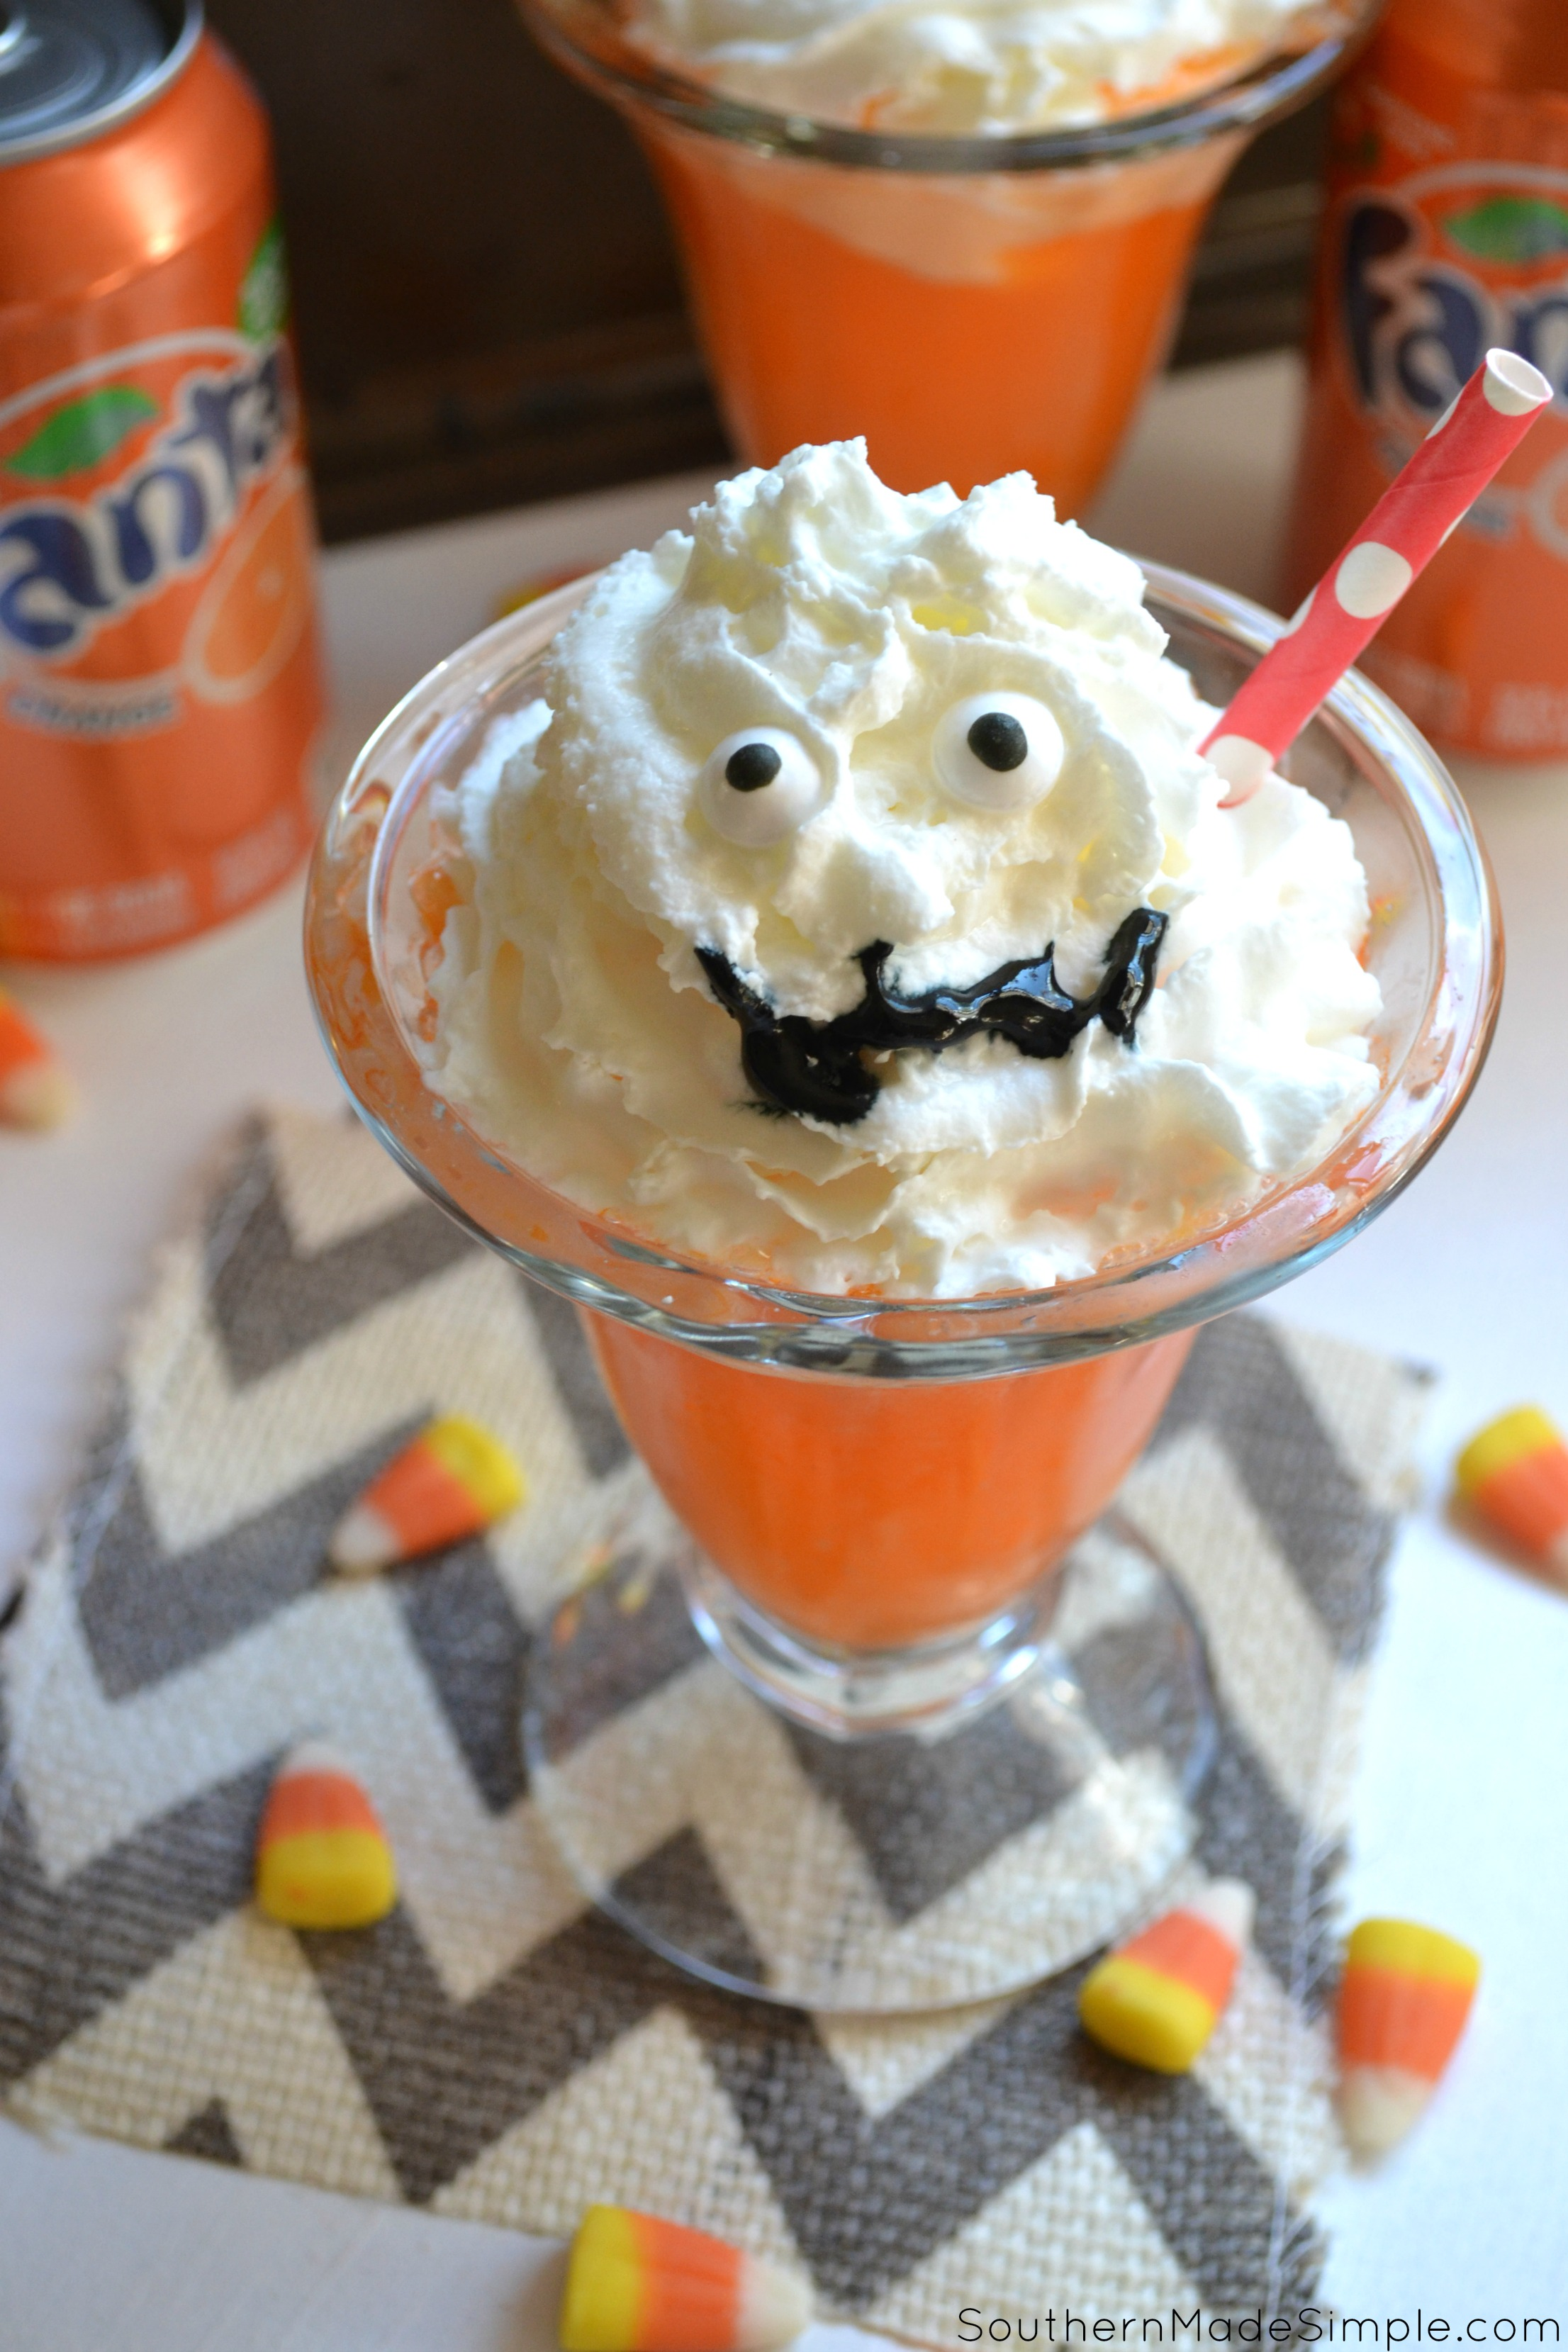 These cute little Orange Fanta Scram-scicle floats are the perfect treat to serve for a hauntingly awesome Halloween! They're simple to make and even more fun to devour...if you dare! #WickedFantaFun #ad